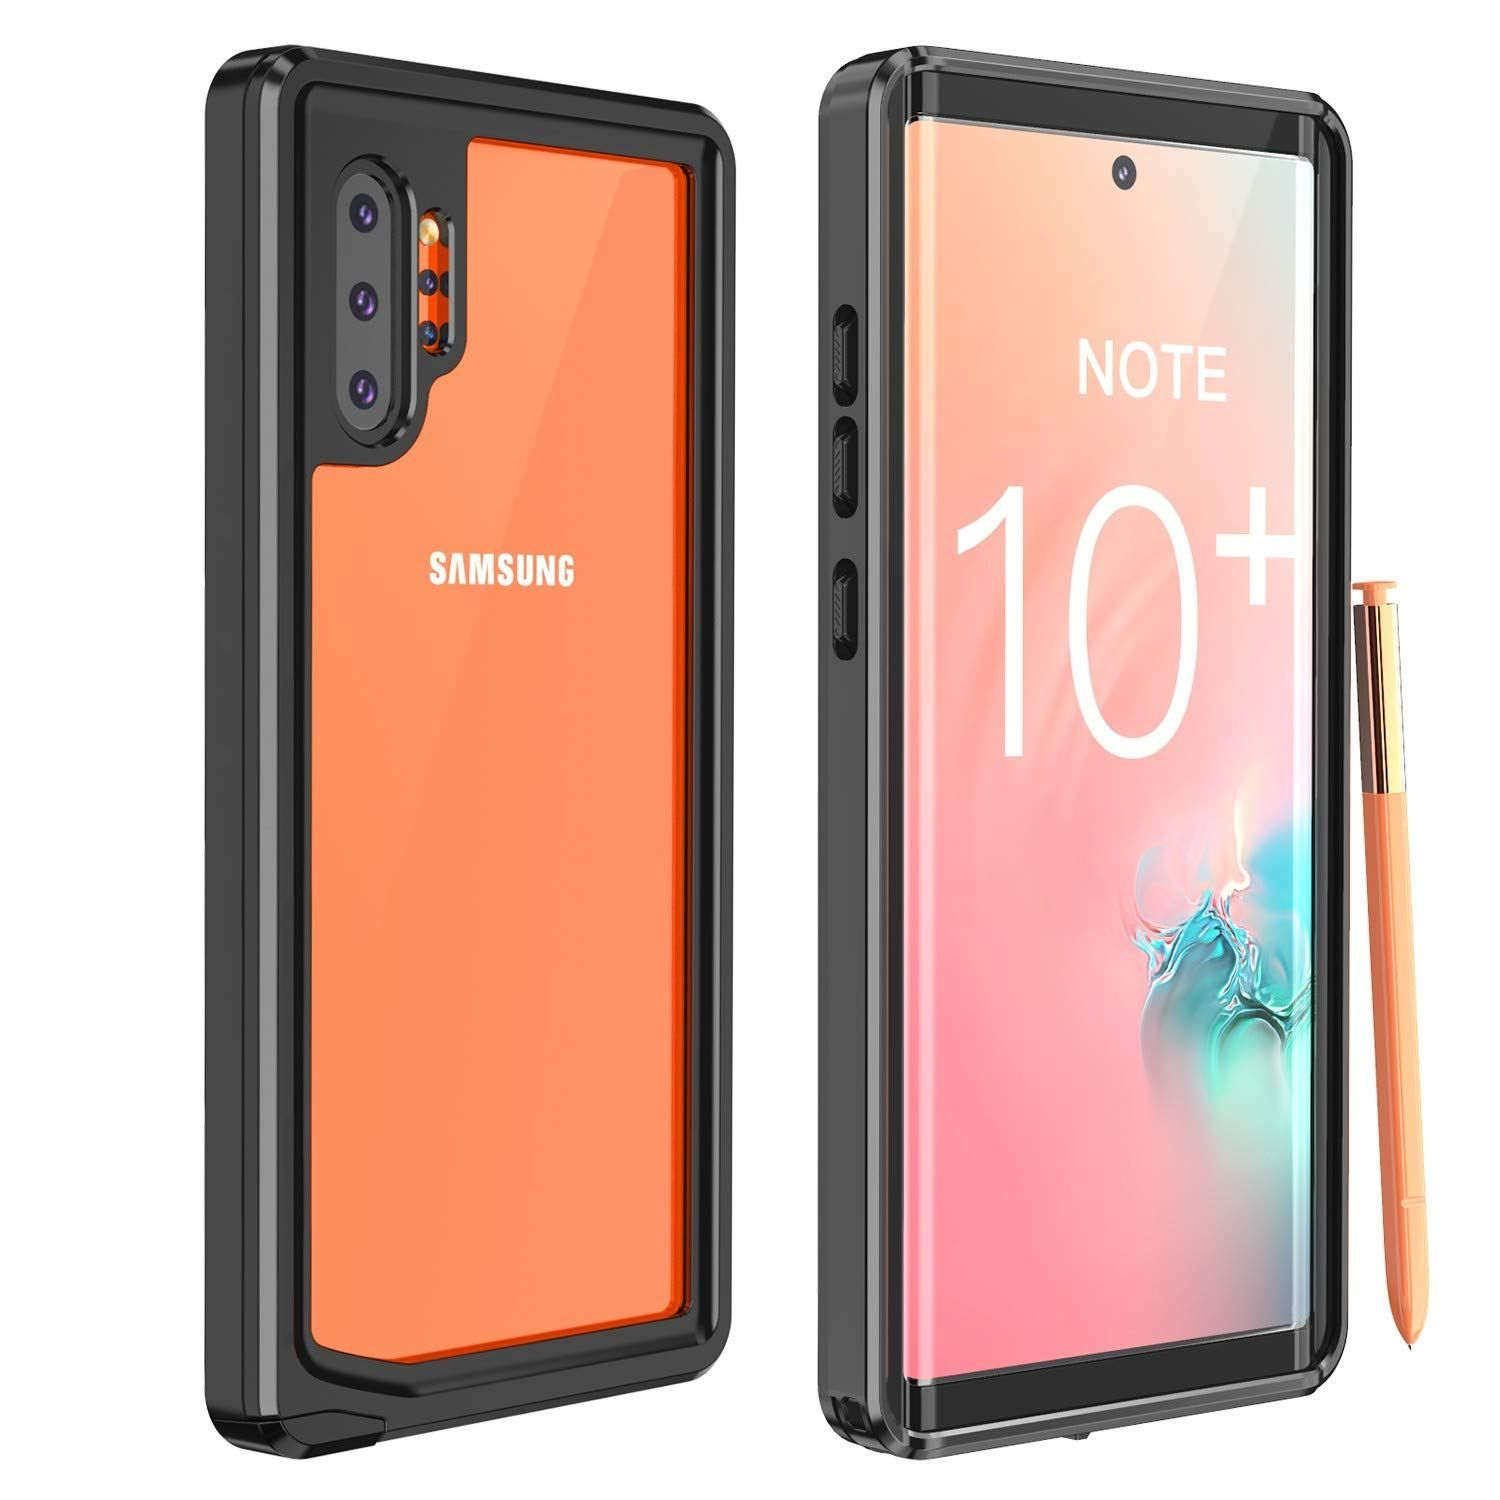 Boughtagain Awesome Goods You Bought It Again Galaxy Note 10 Galaxy Note Samsung Galaxy Note Aesthetic samsung galaxy note 10 plus